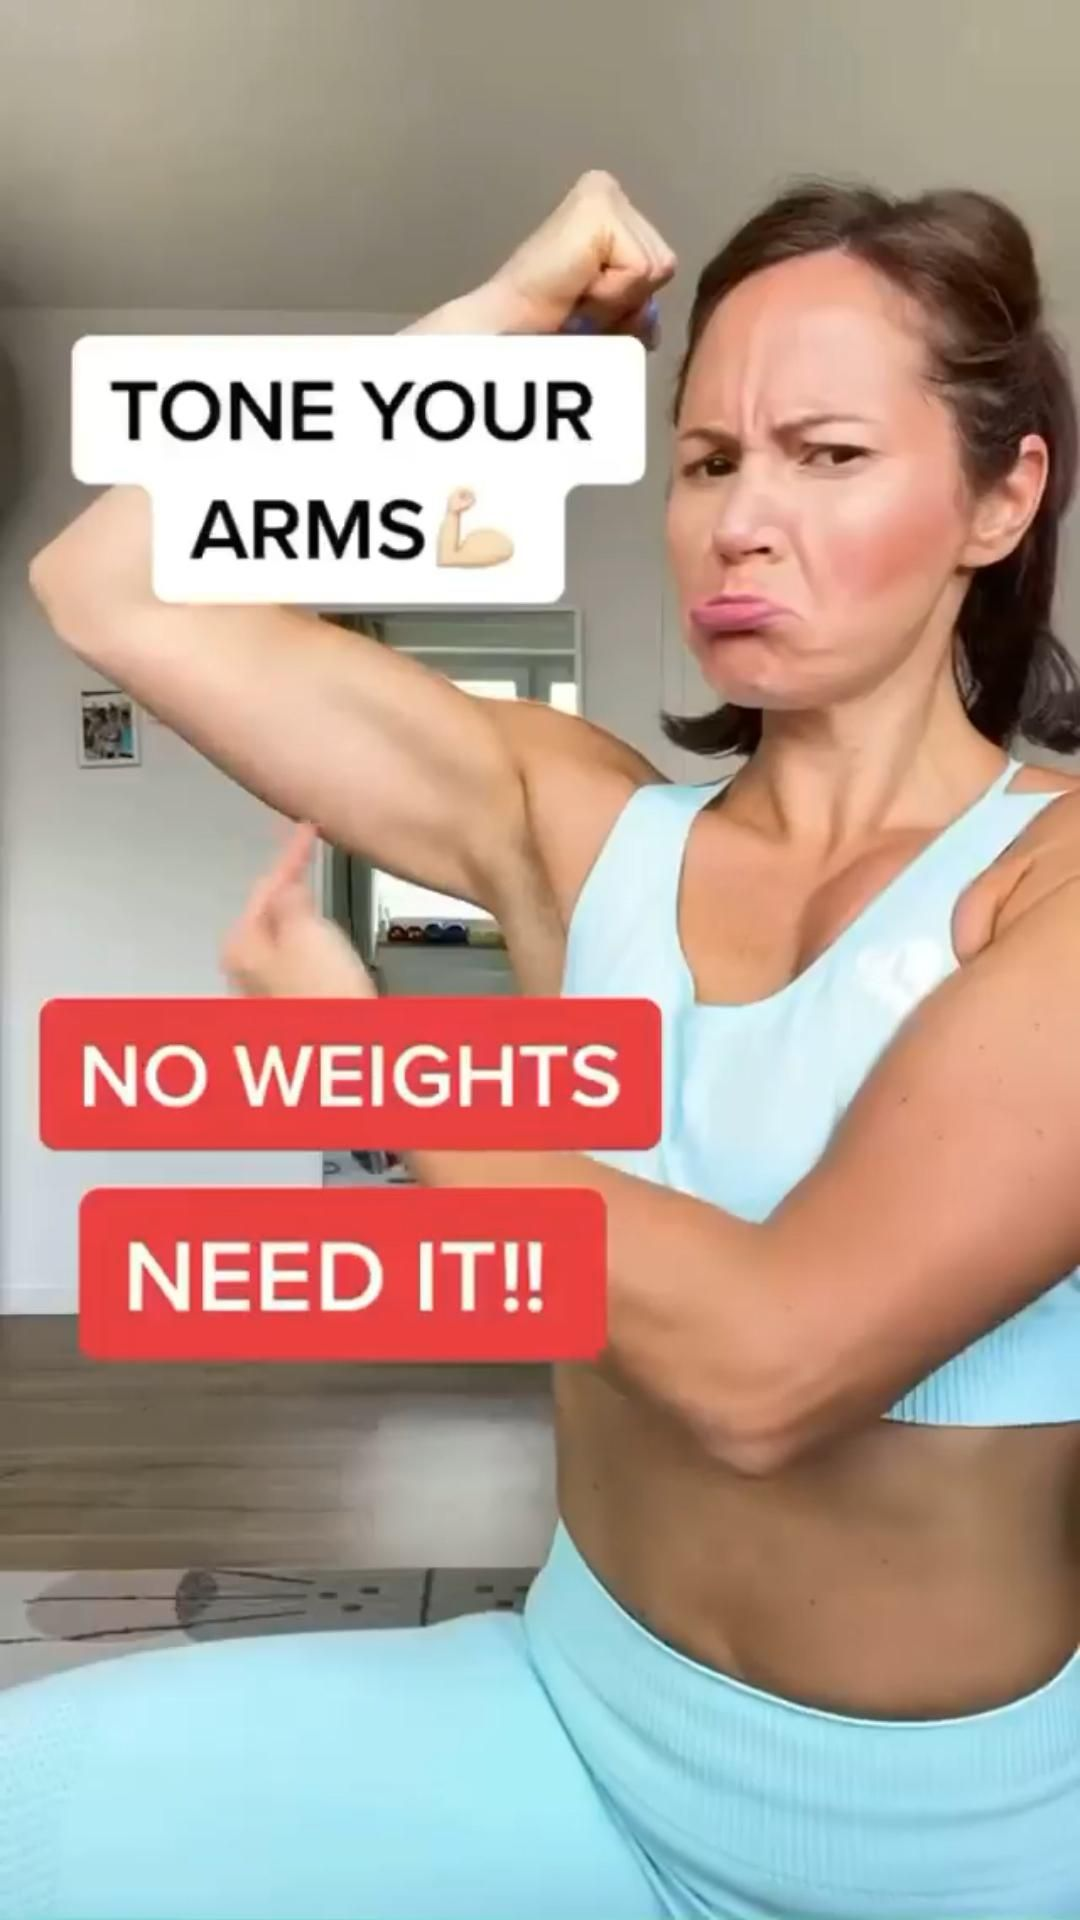 TONE YOUR ARMS!💪 NO WEIGHTS NEEDED!